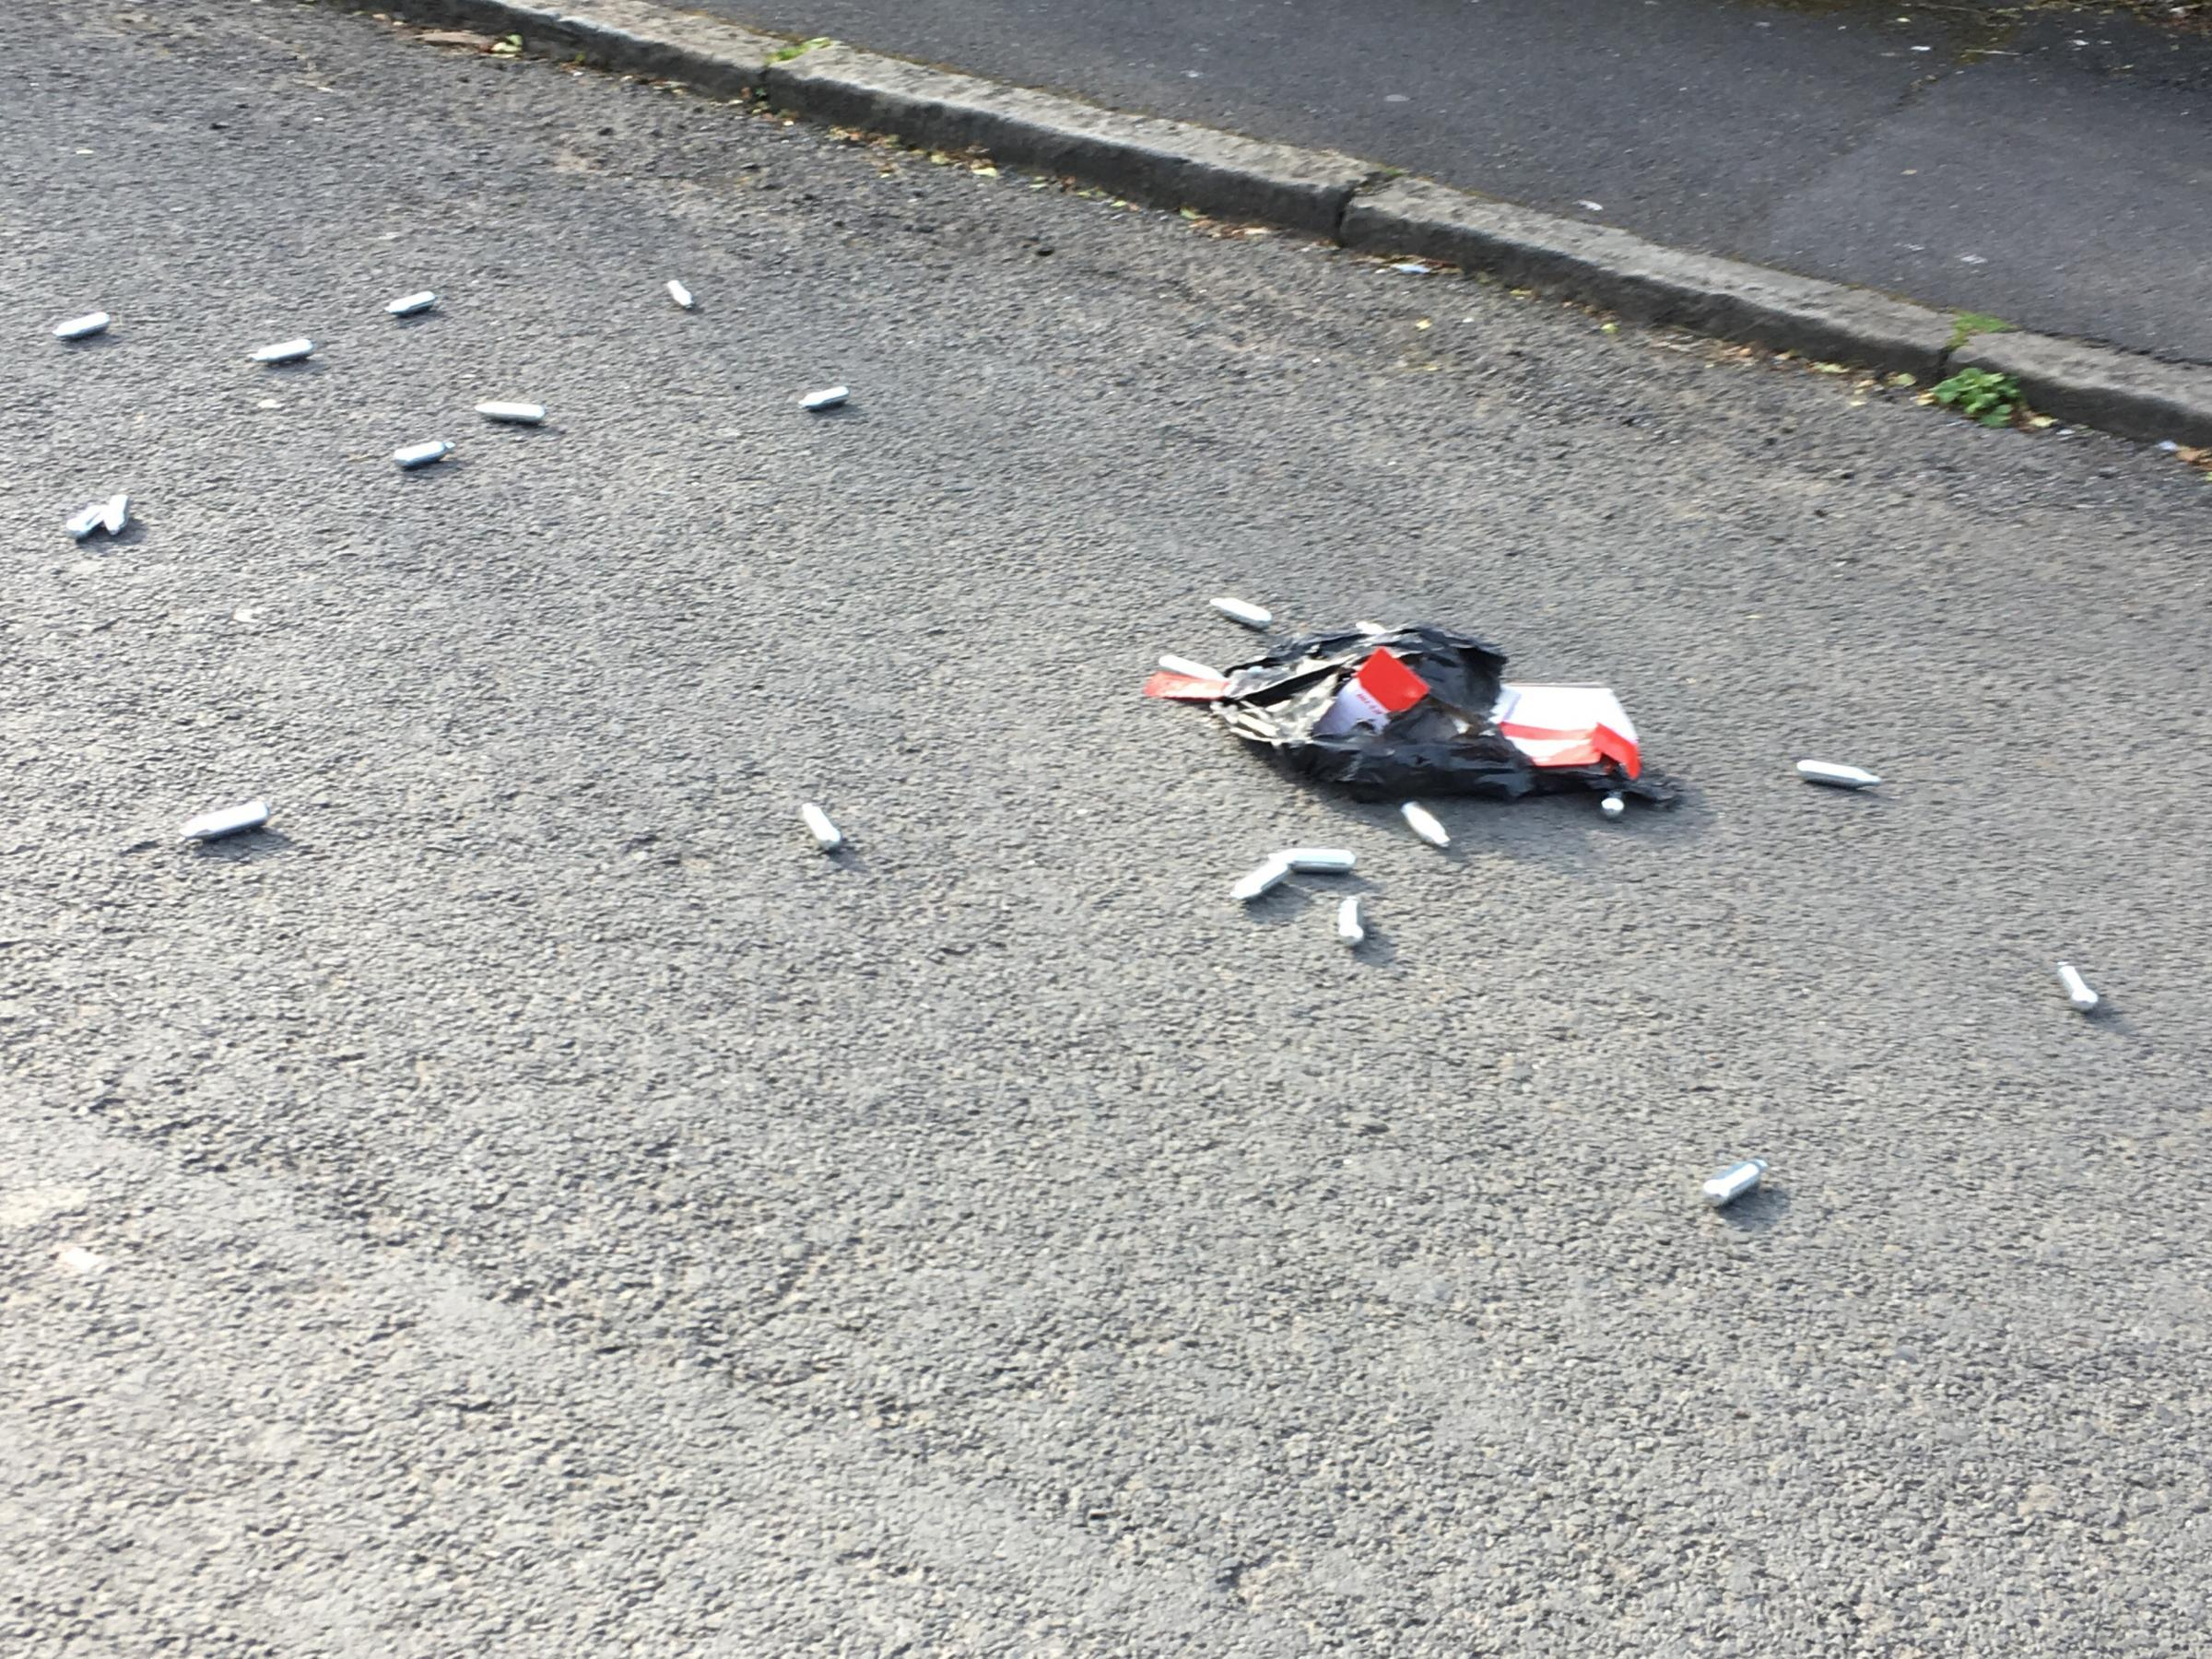 Nitrous Oxide canisters spotted by Kate Lurie in Prestwich